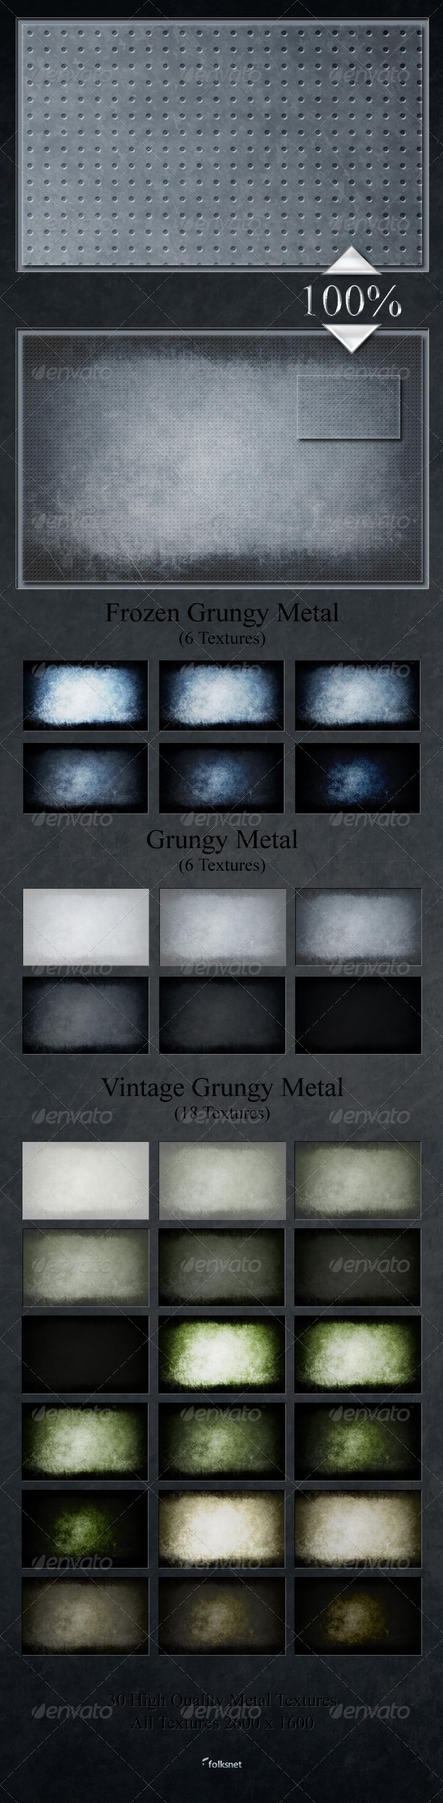 Grungy Metal Textures by GrDezign